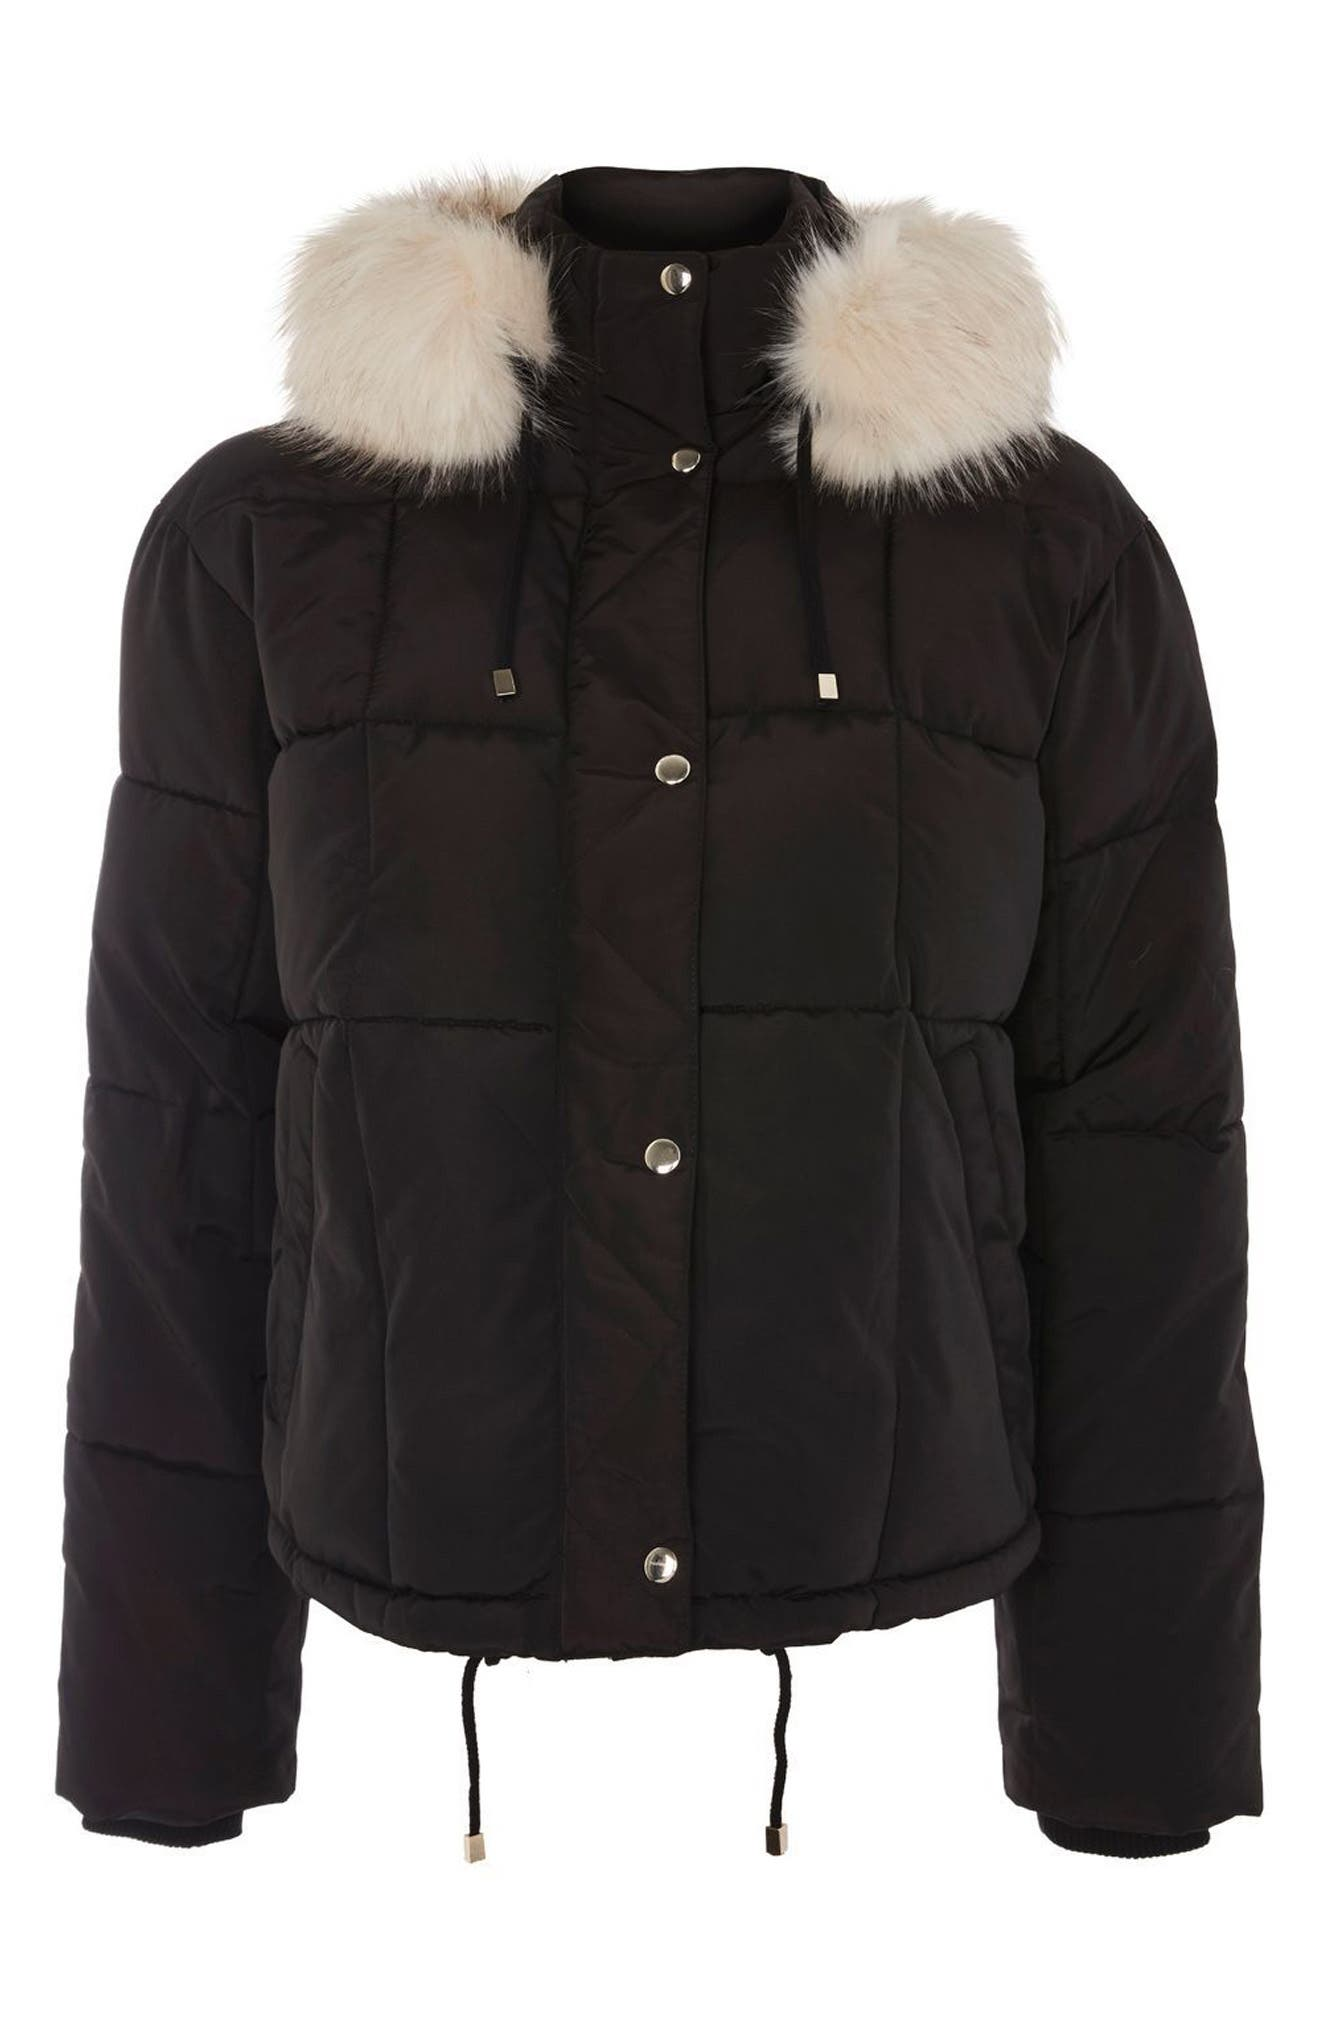 Faux Fur Lined Puffer Jacket,                             Main thumbnail 1, color,                             Black Multi